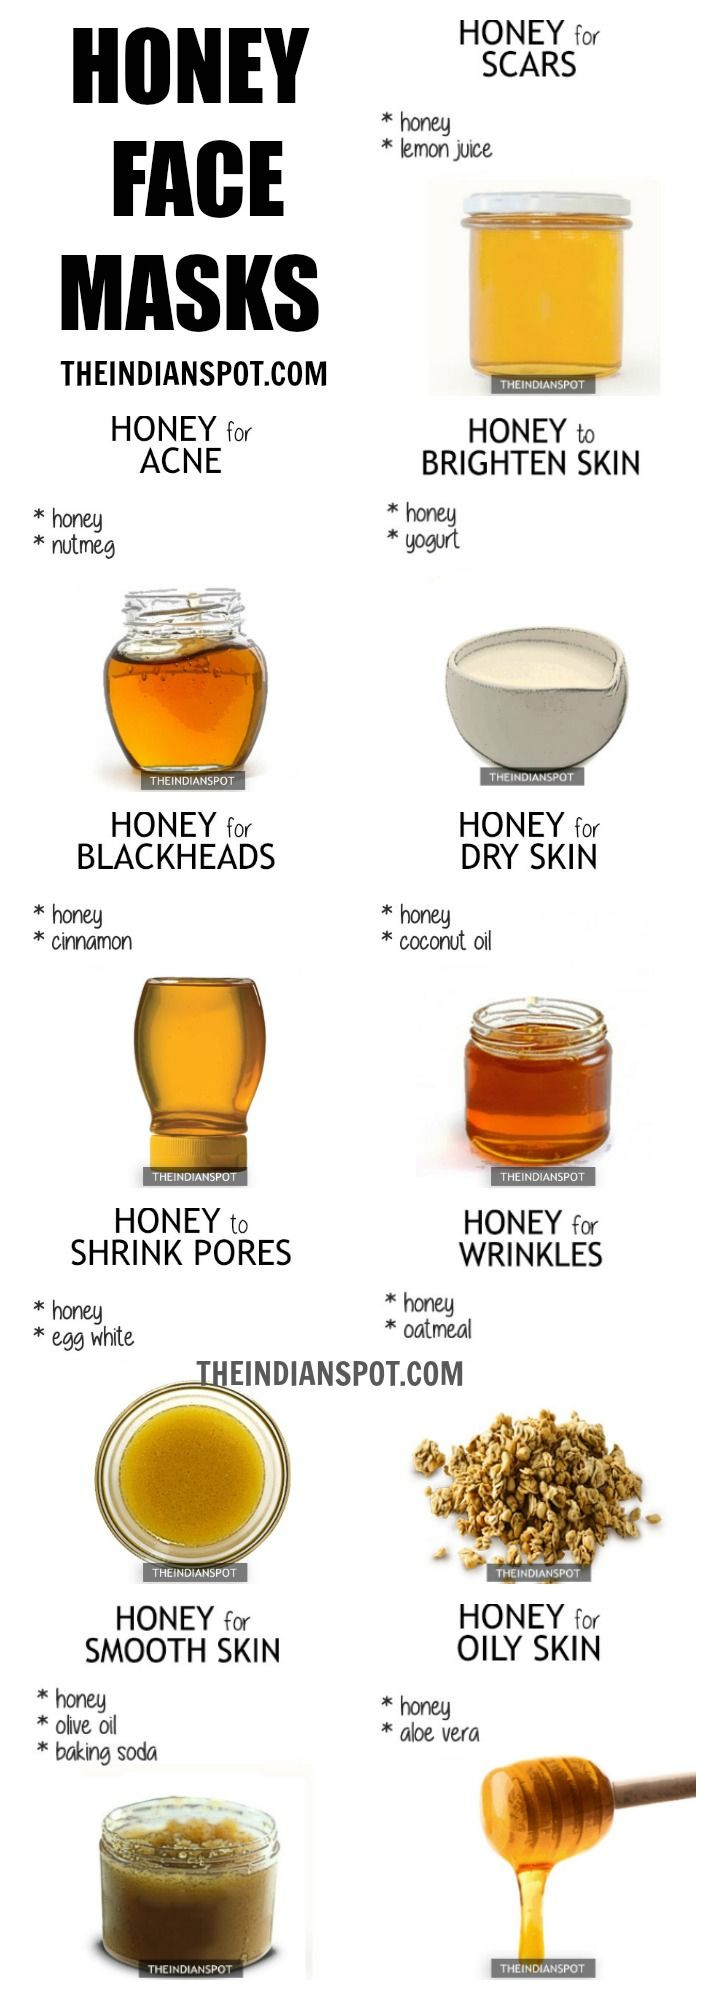 Best ideas about Face Masks DIY . Save or Pin 25 best ideas about Natural face masks on Pinterest Now.